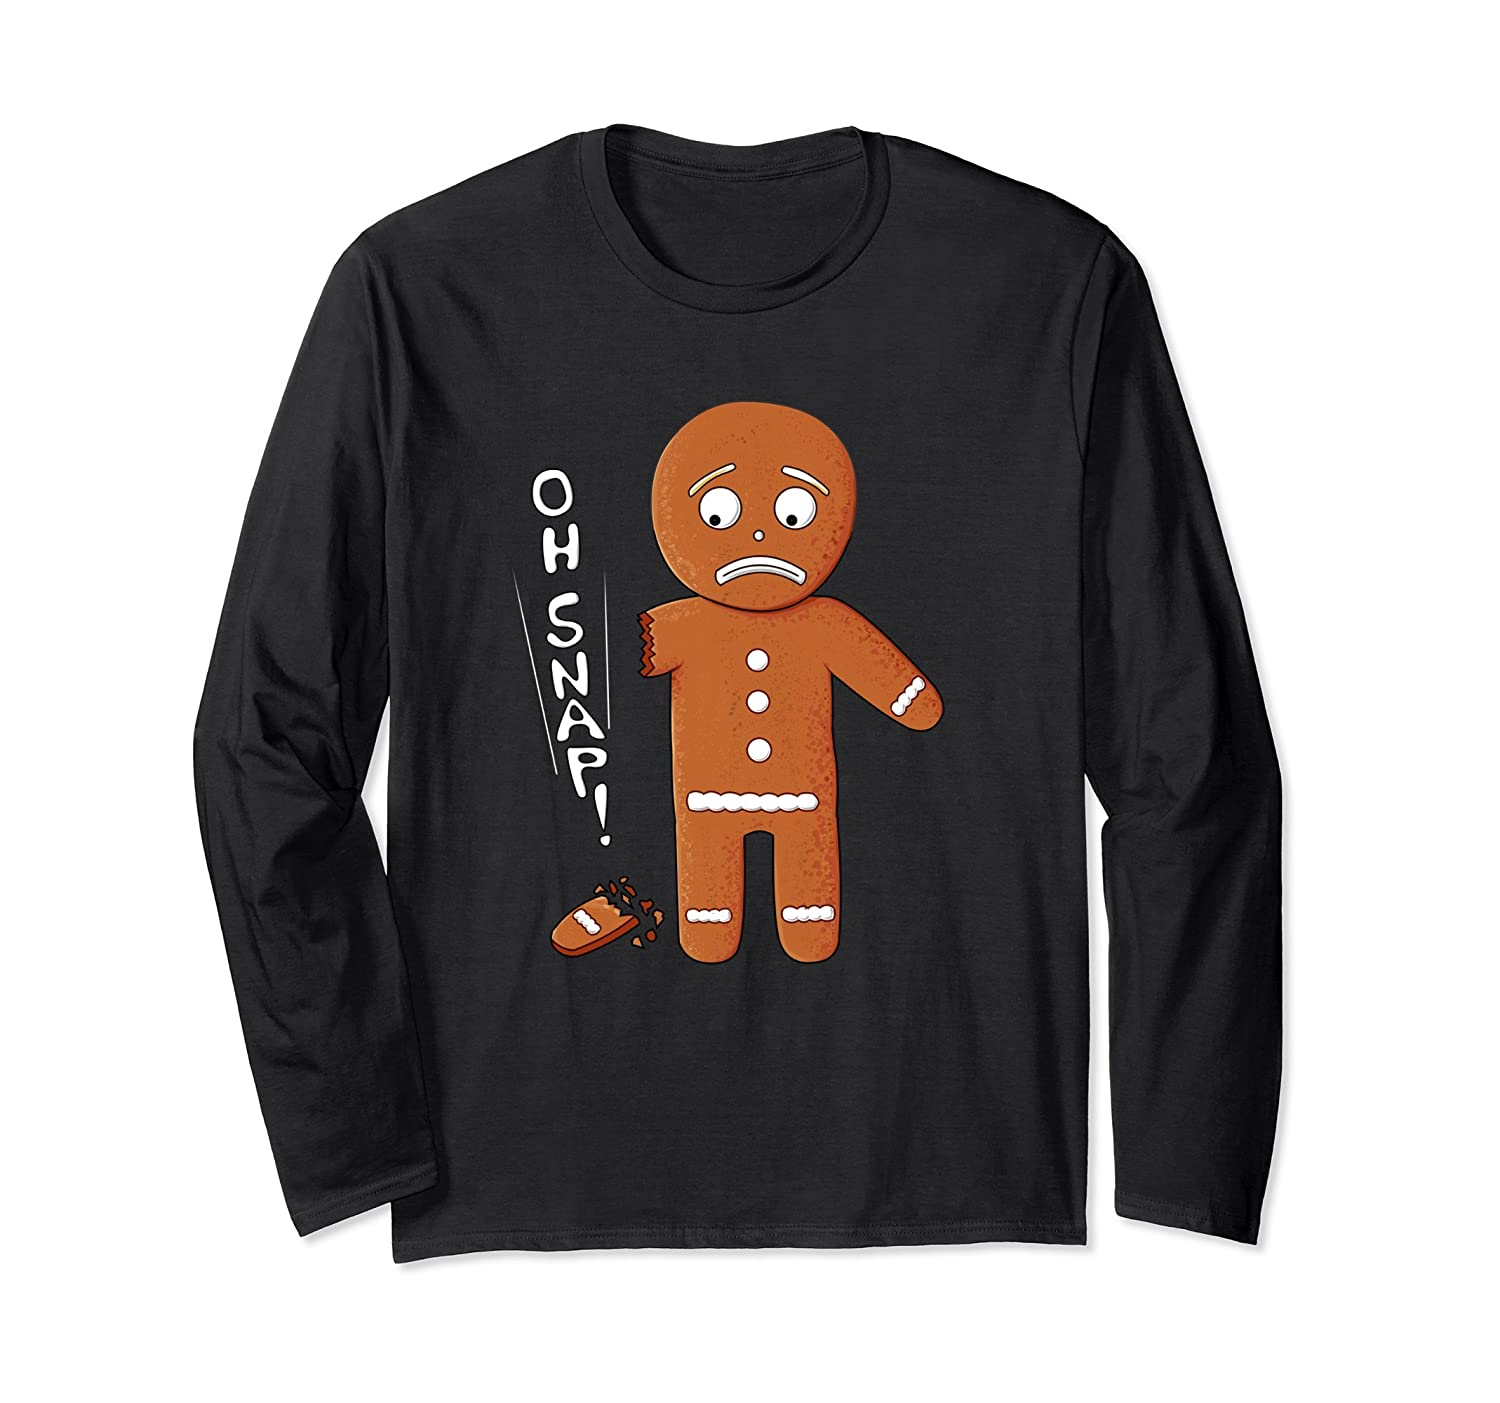 1221ad78b Amazon.com: Funny Gingerbread Oh Snap Christmas Pun Long Sleeve T-Shirts:  Clothing